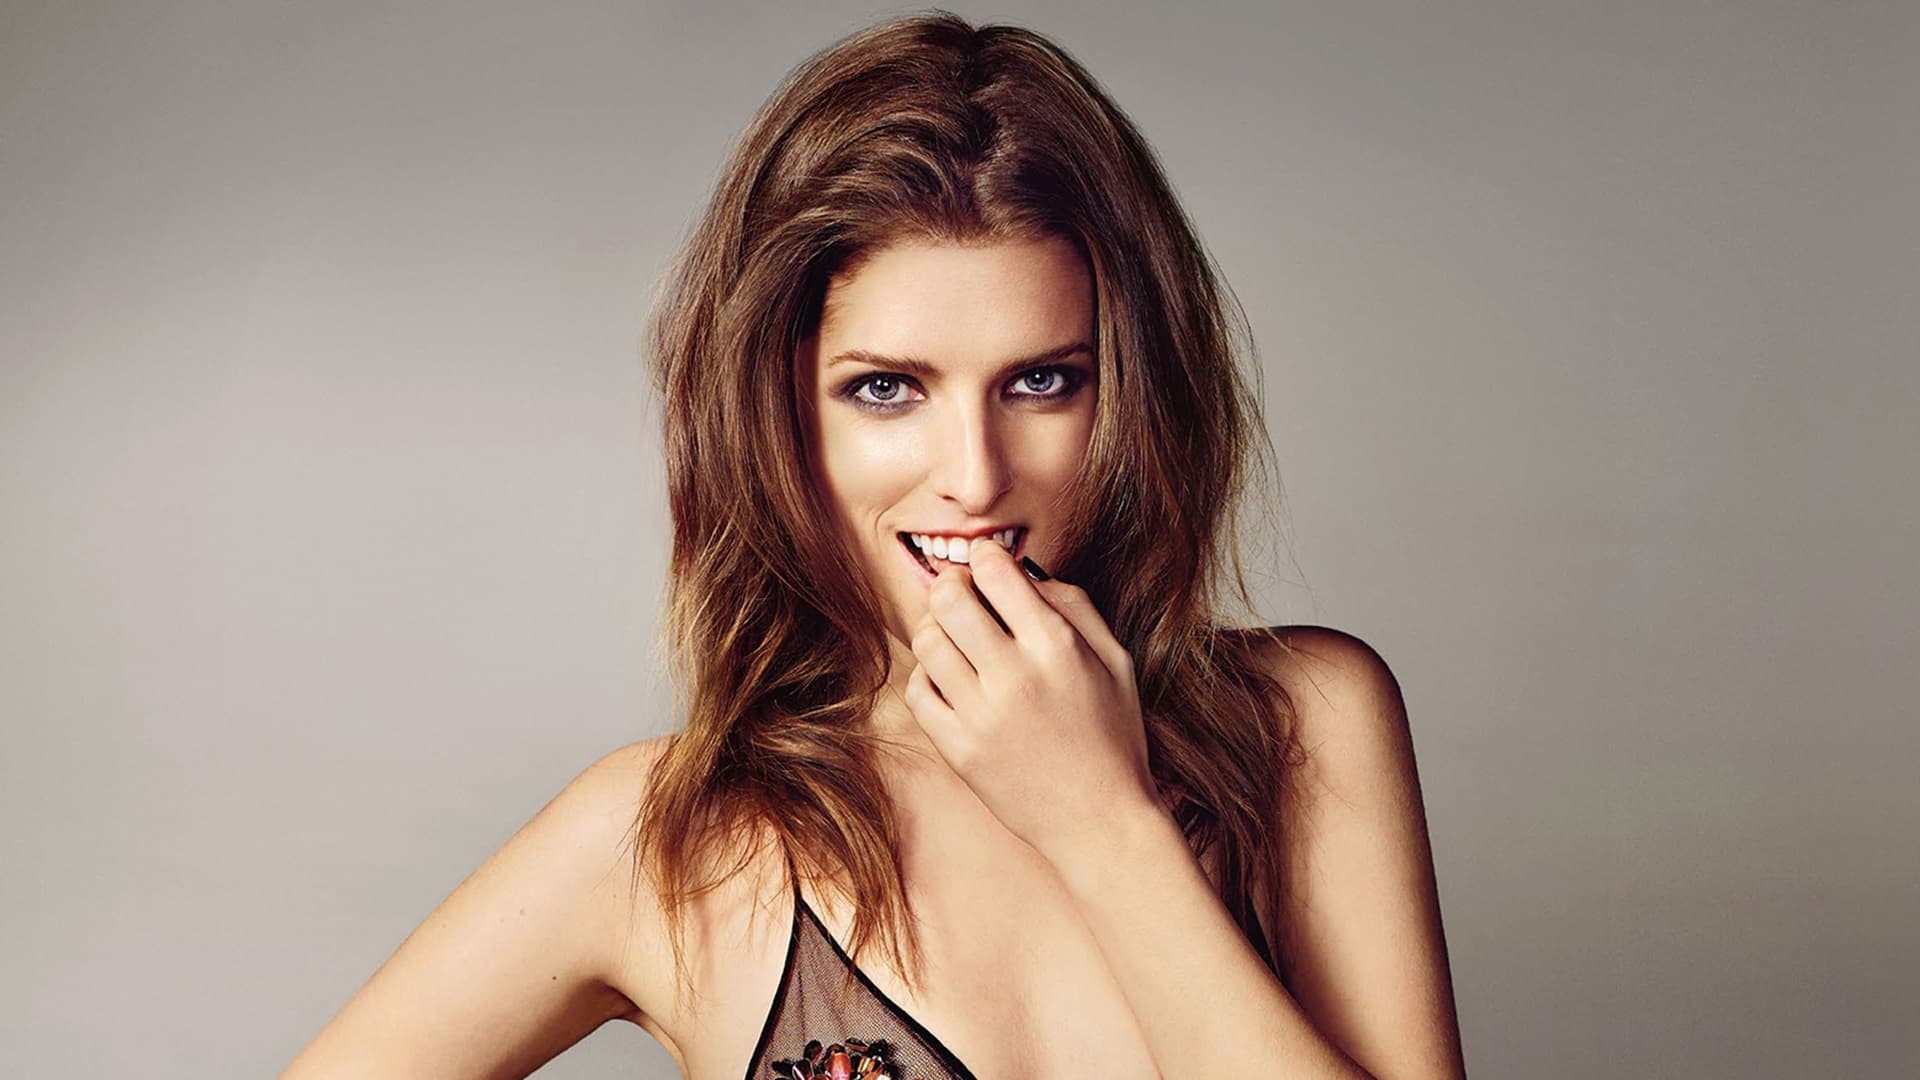 15 anna kendrick wallpapers hd high quality resolution